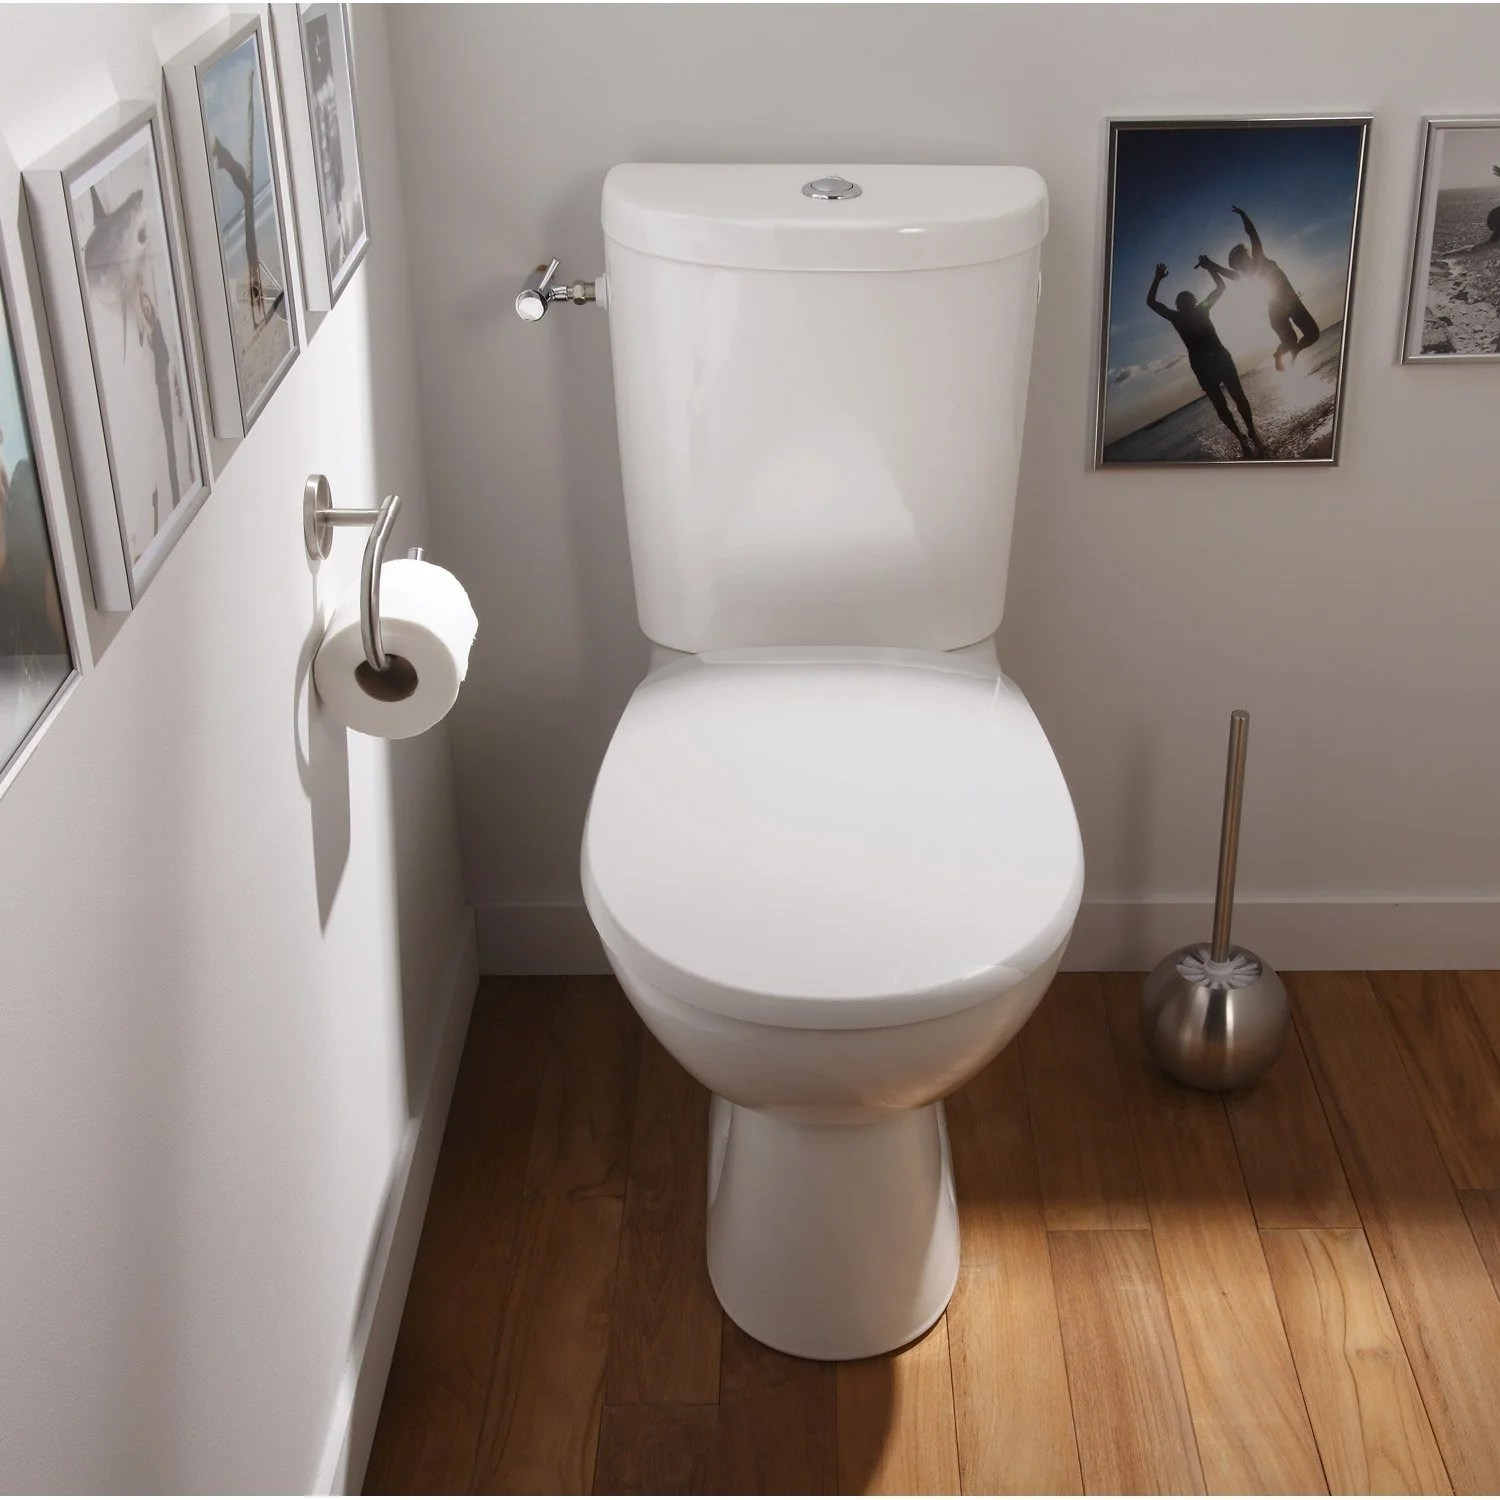 Wc Ideal Standard Leroy Merlin Pack Wc à Poser Sortie Horizontale Sensea Remix